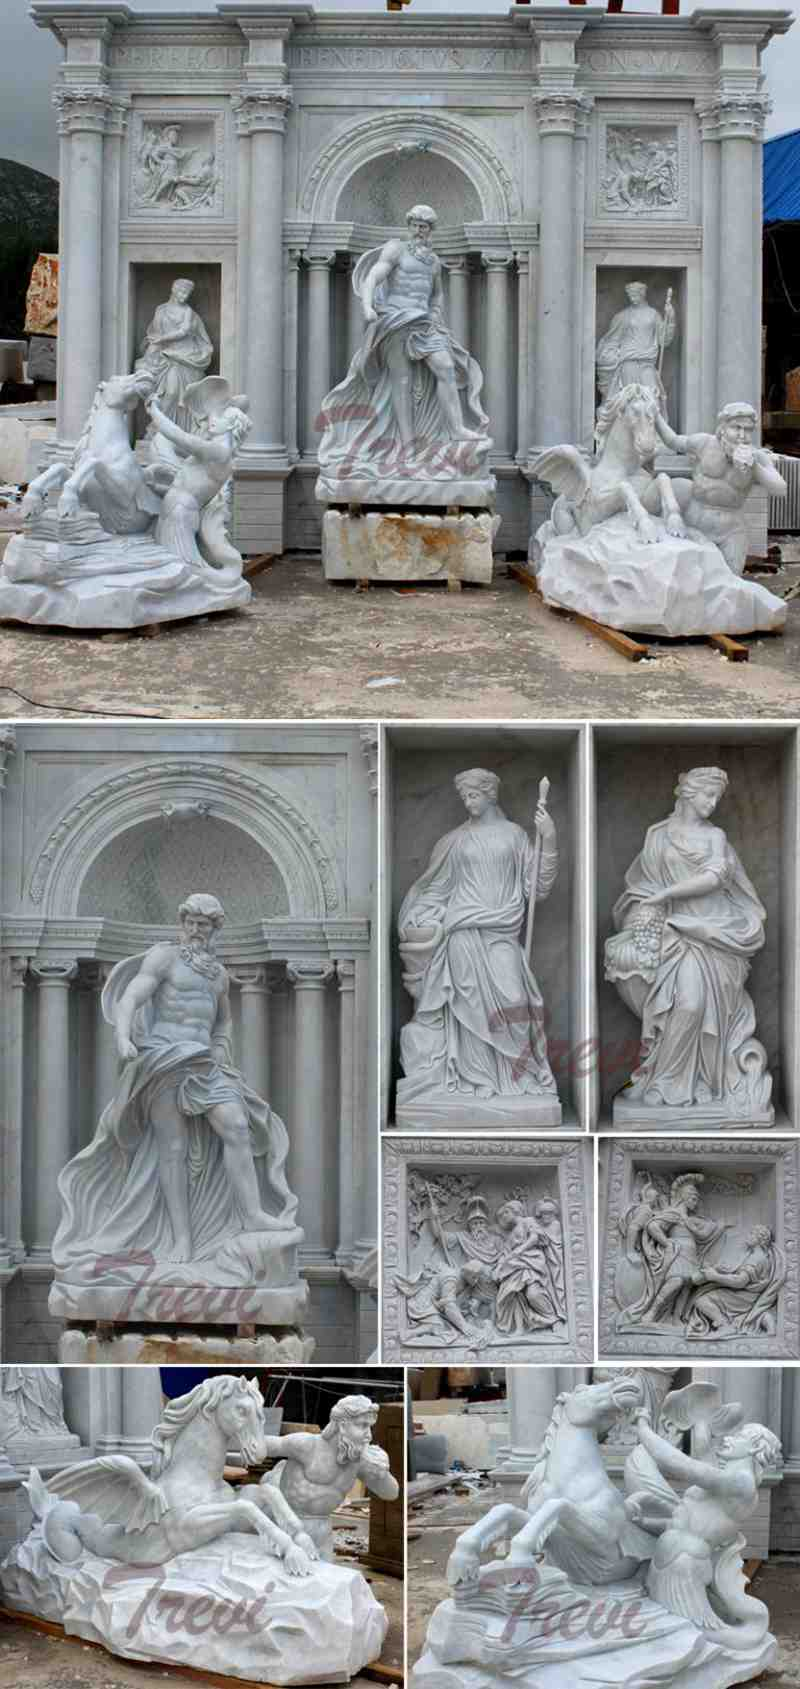 World Famous Marble Trevi Fountains Replica Luxurious Marble Fountains for Sale Details